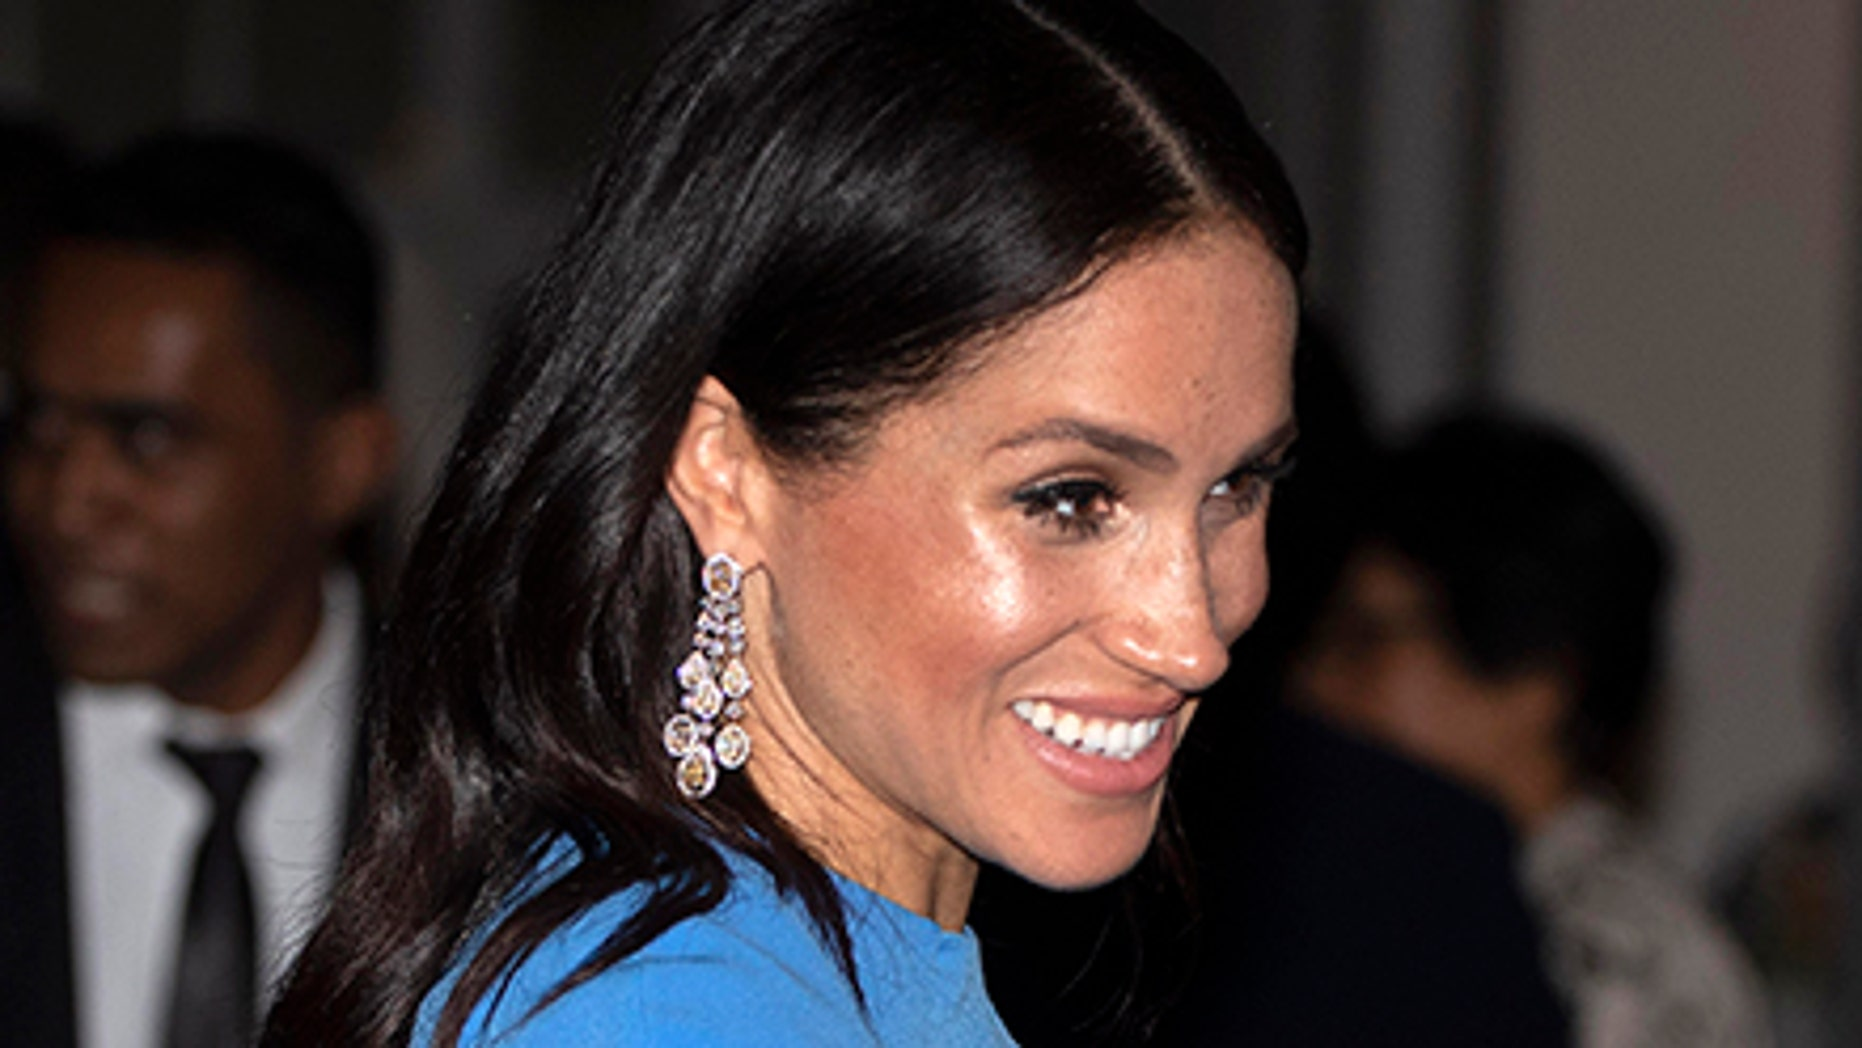 Meghan, Duchess of Sussex at the official dinner in Suva, Fiji, Tuesday, Oct. 23, 2018.